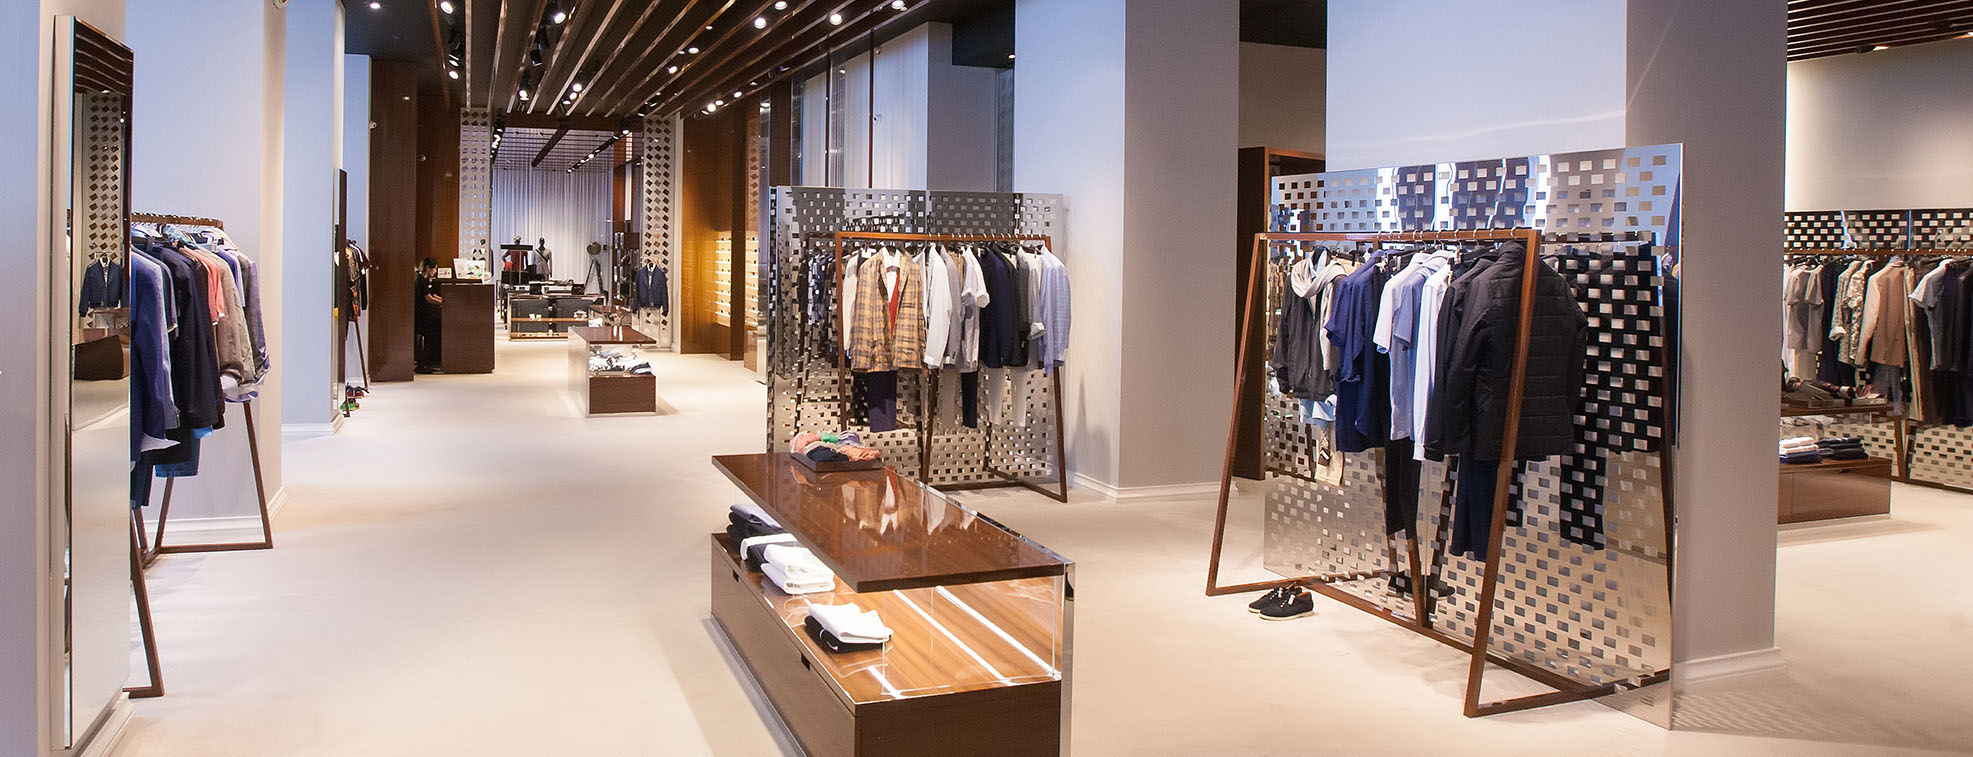 Visually pleasing and simple clothes store layout